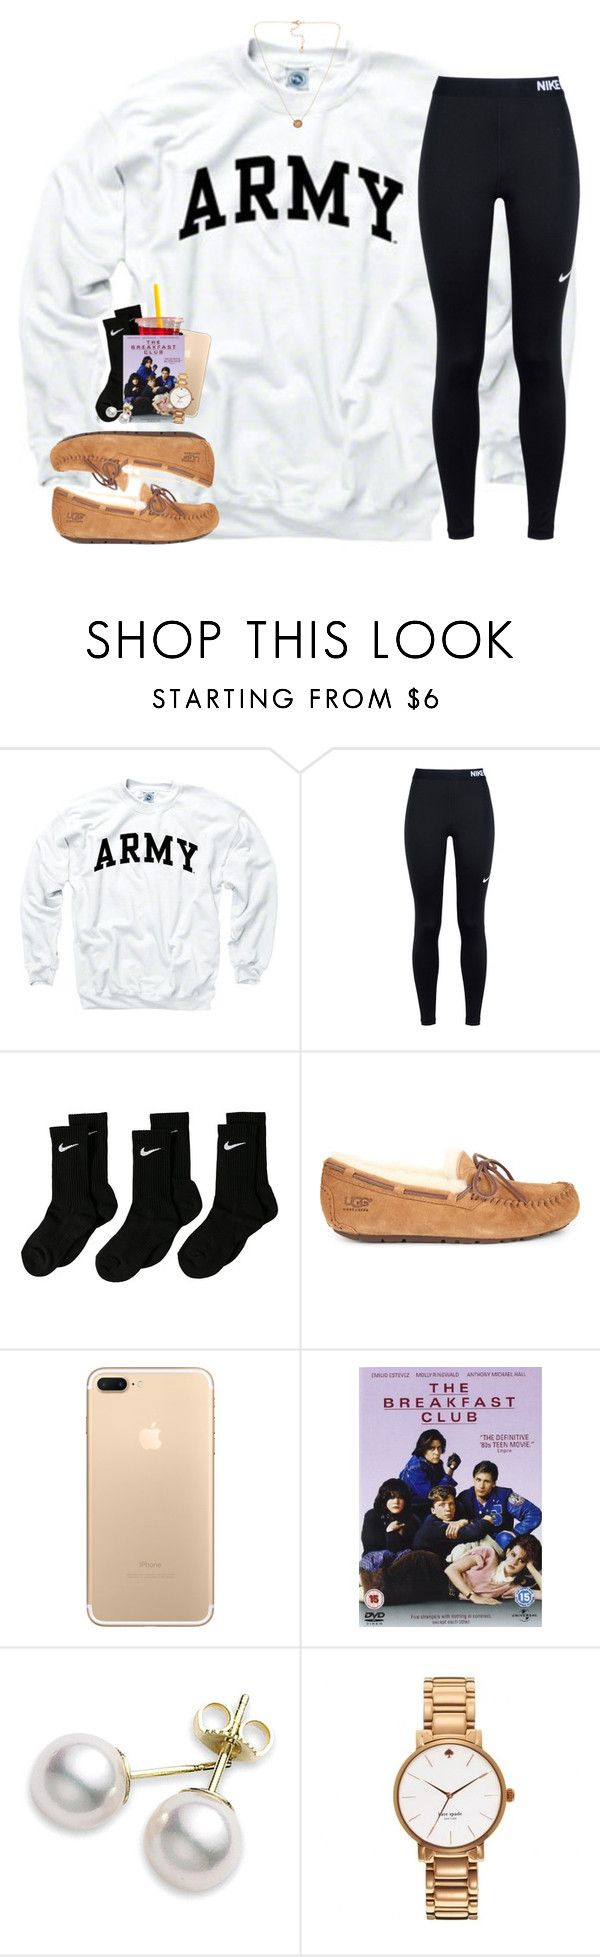 """I'm ready for the weekend!"" by sassysouthernprep99 ❤ liked on Polyvore featuring NIKE, UGG, Mikimoto, Kate Spade and Pieces"